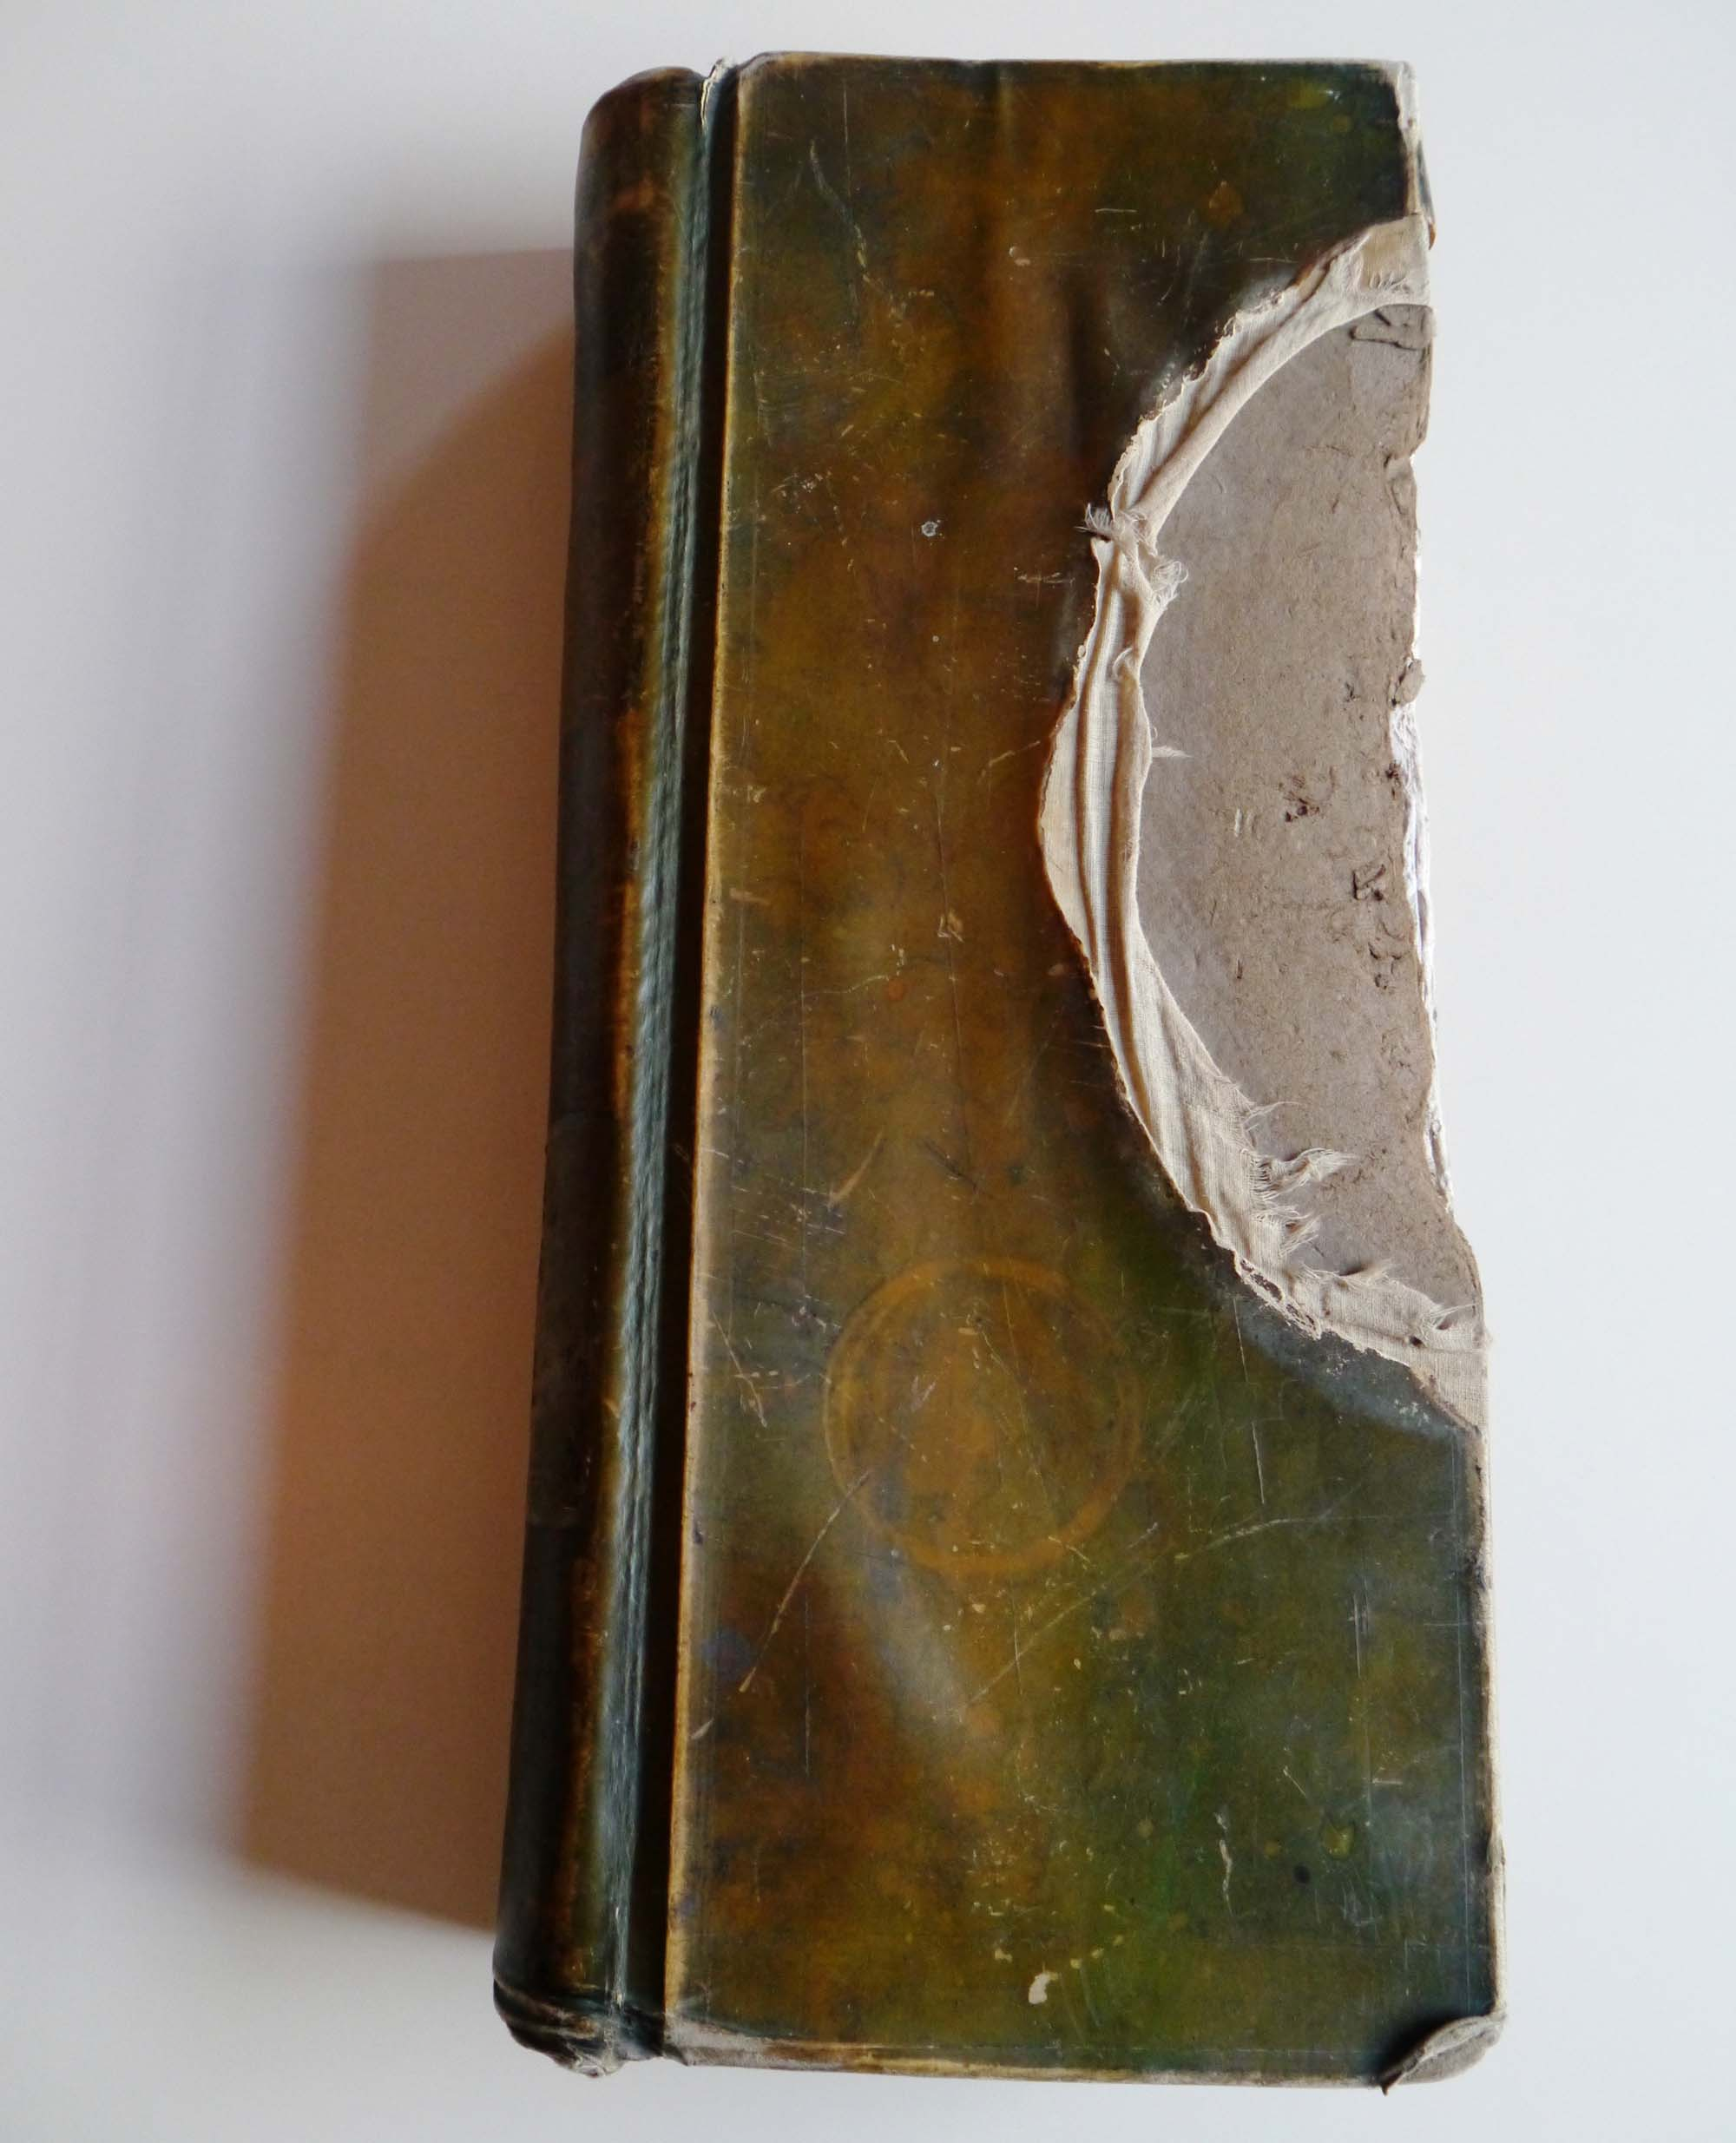 a photo of a large long slim leather bound book with a chunk taken out of its cover